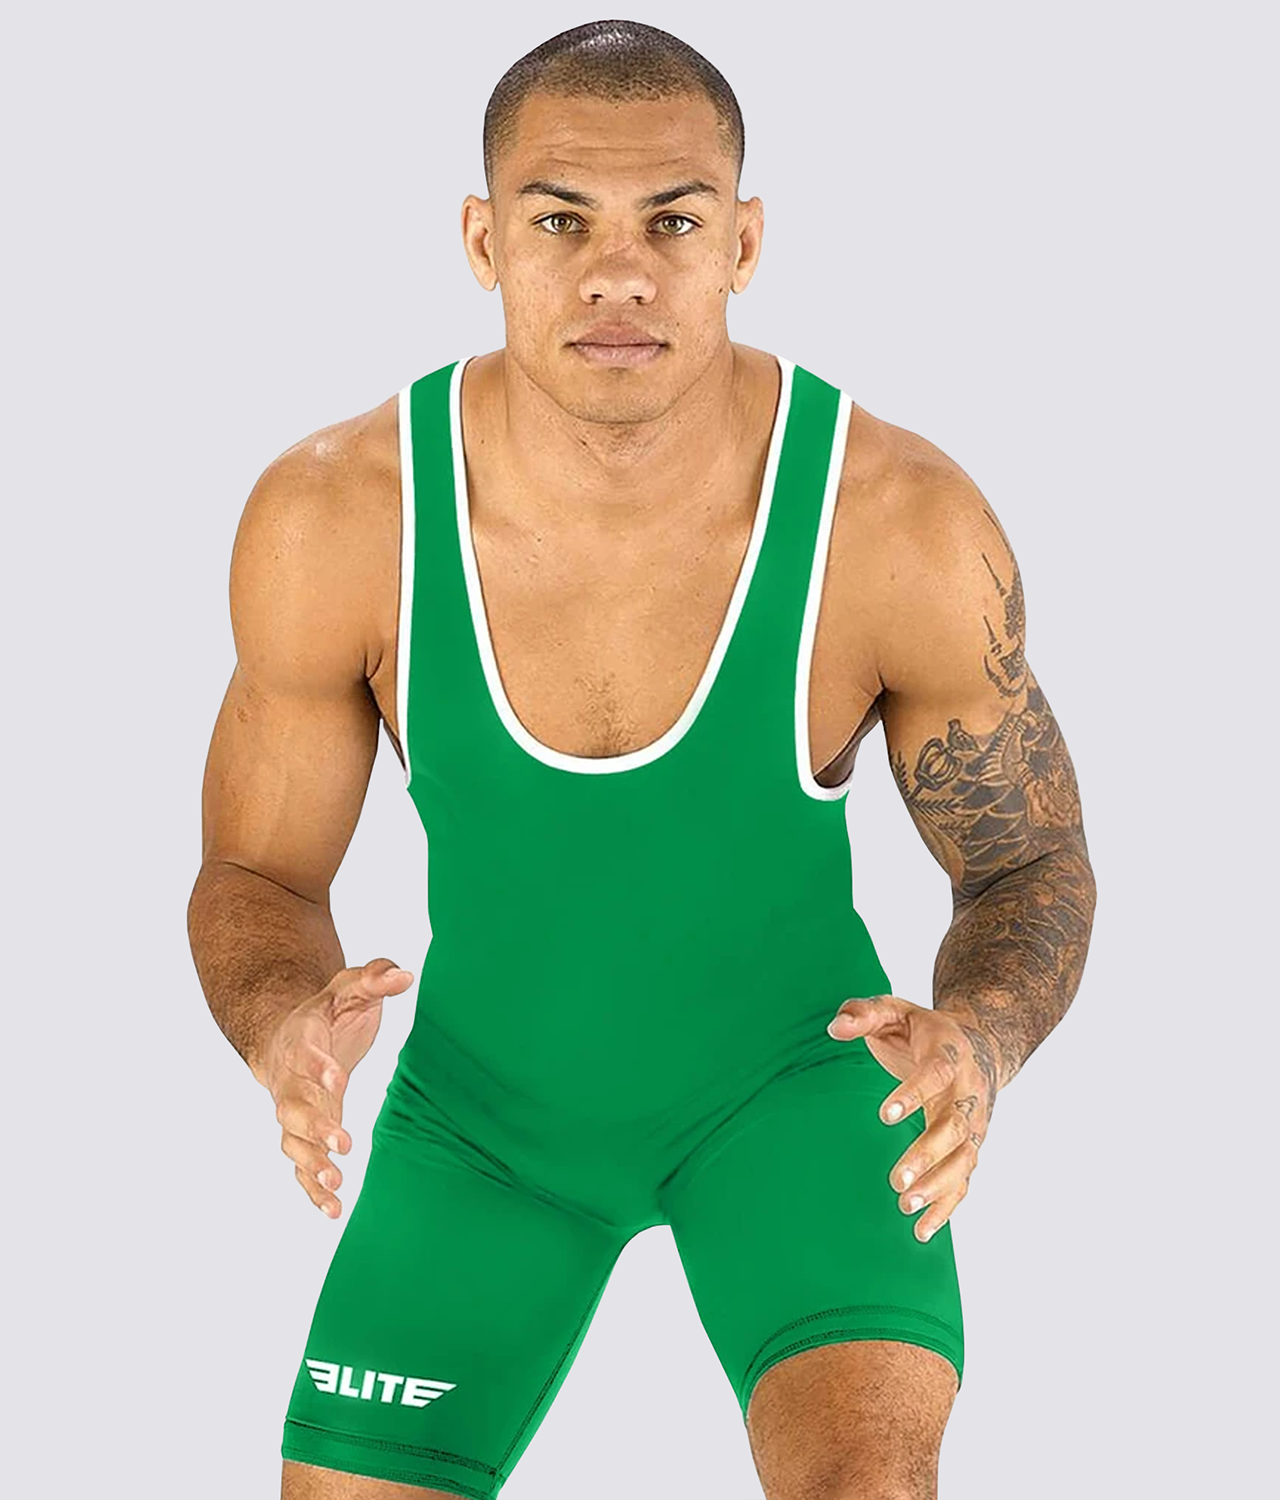 Elite Sports Standard Series Antibacterial Green Wrestling Singlets